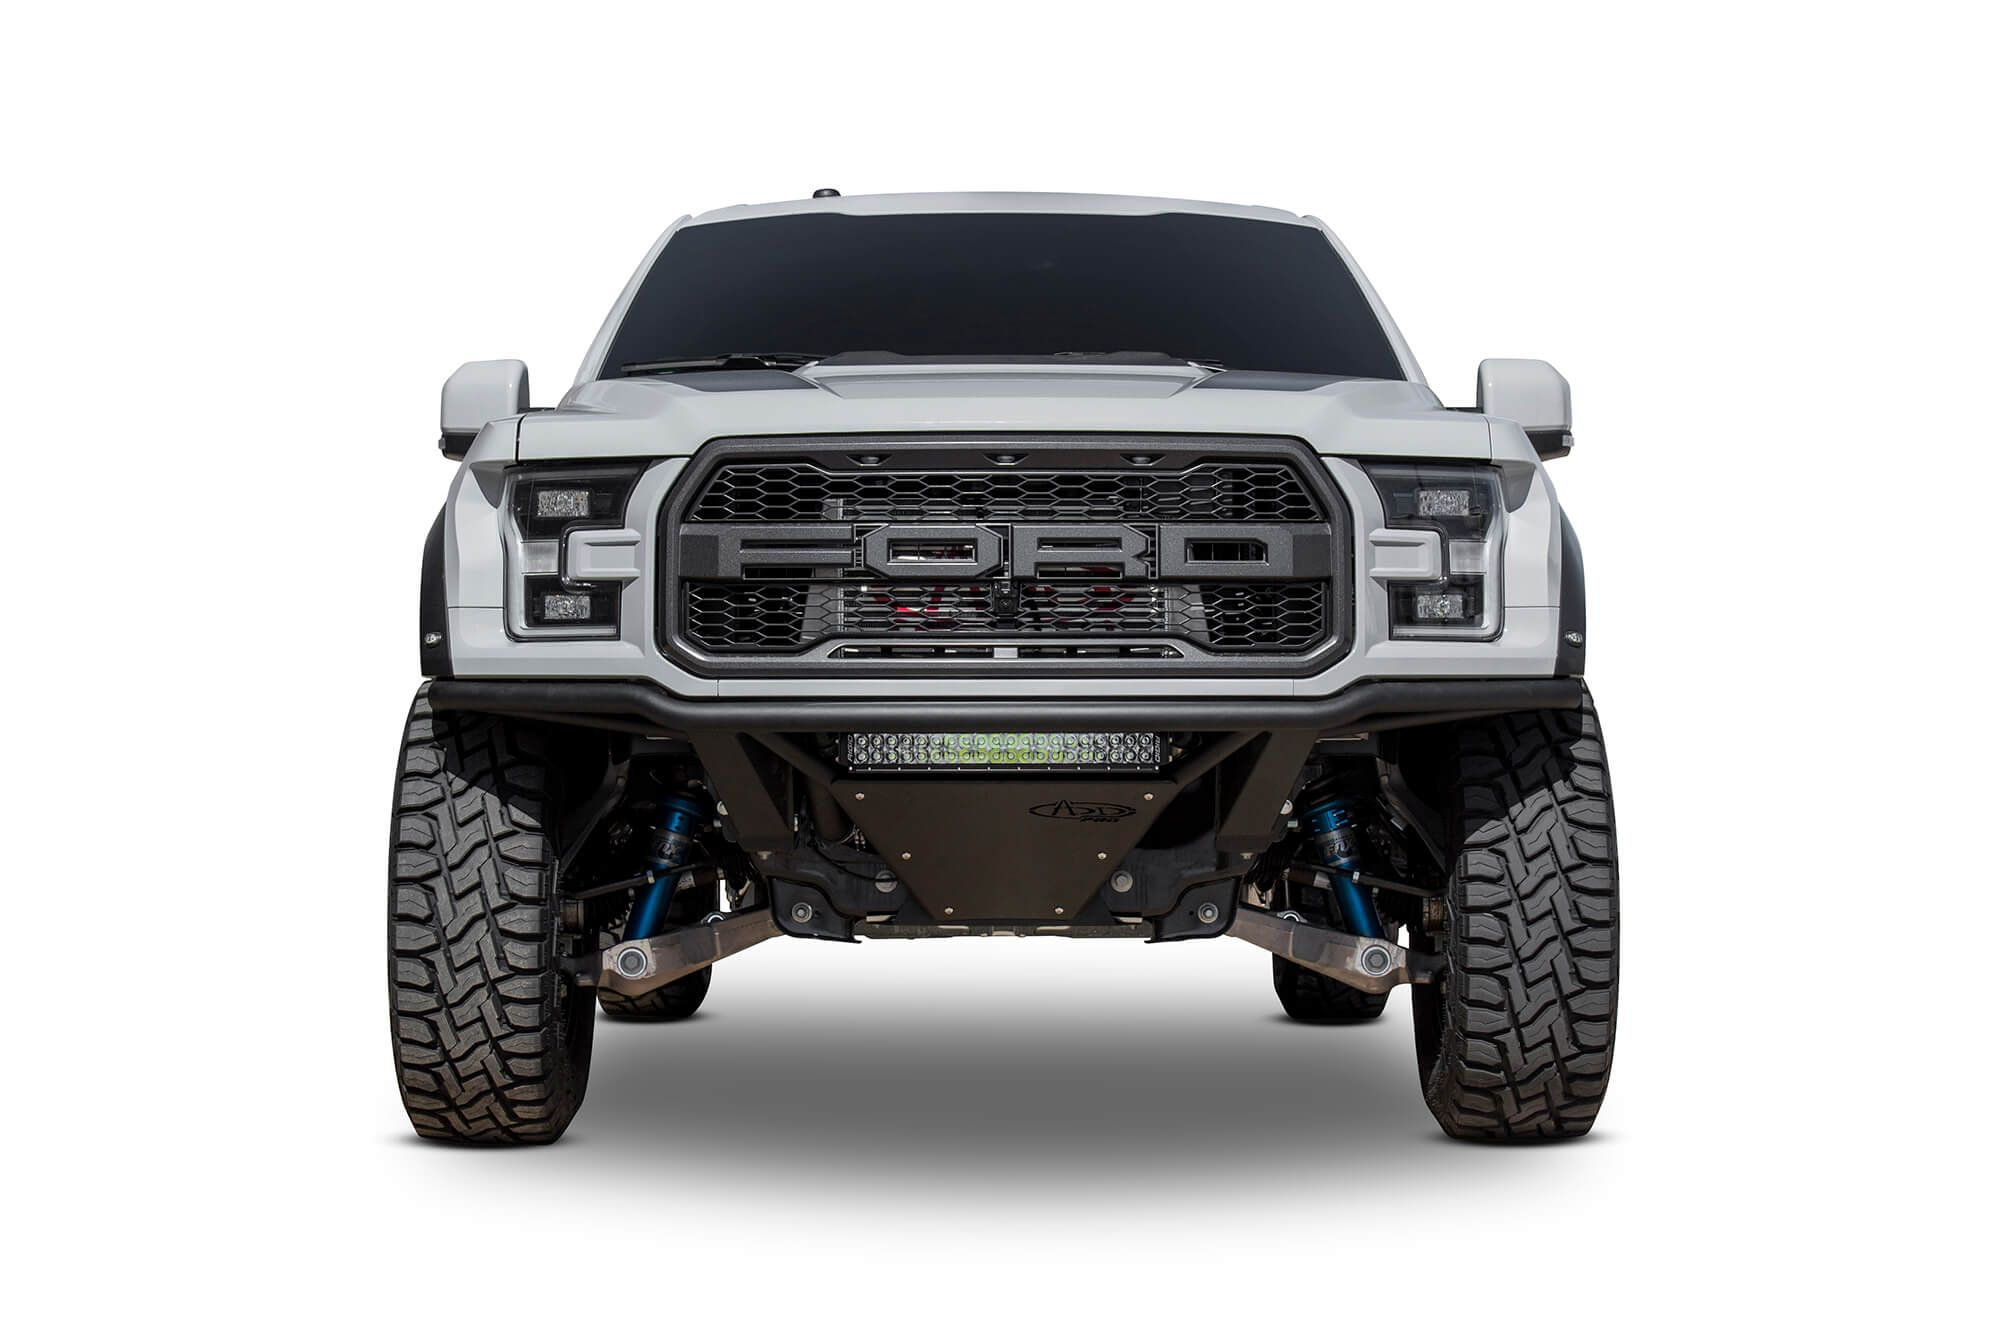 Buy 2017 2018 Ford Raptor Add Pro Front Bumper With Free Shipping Ford Raptor Raptor Ford Raptor 2017